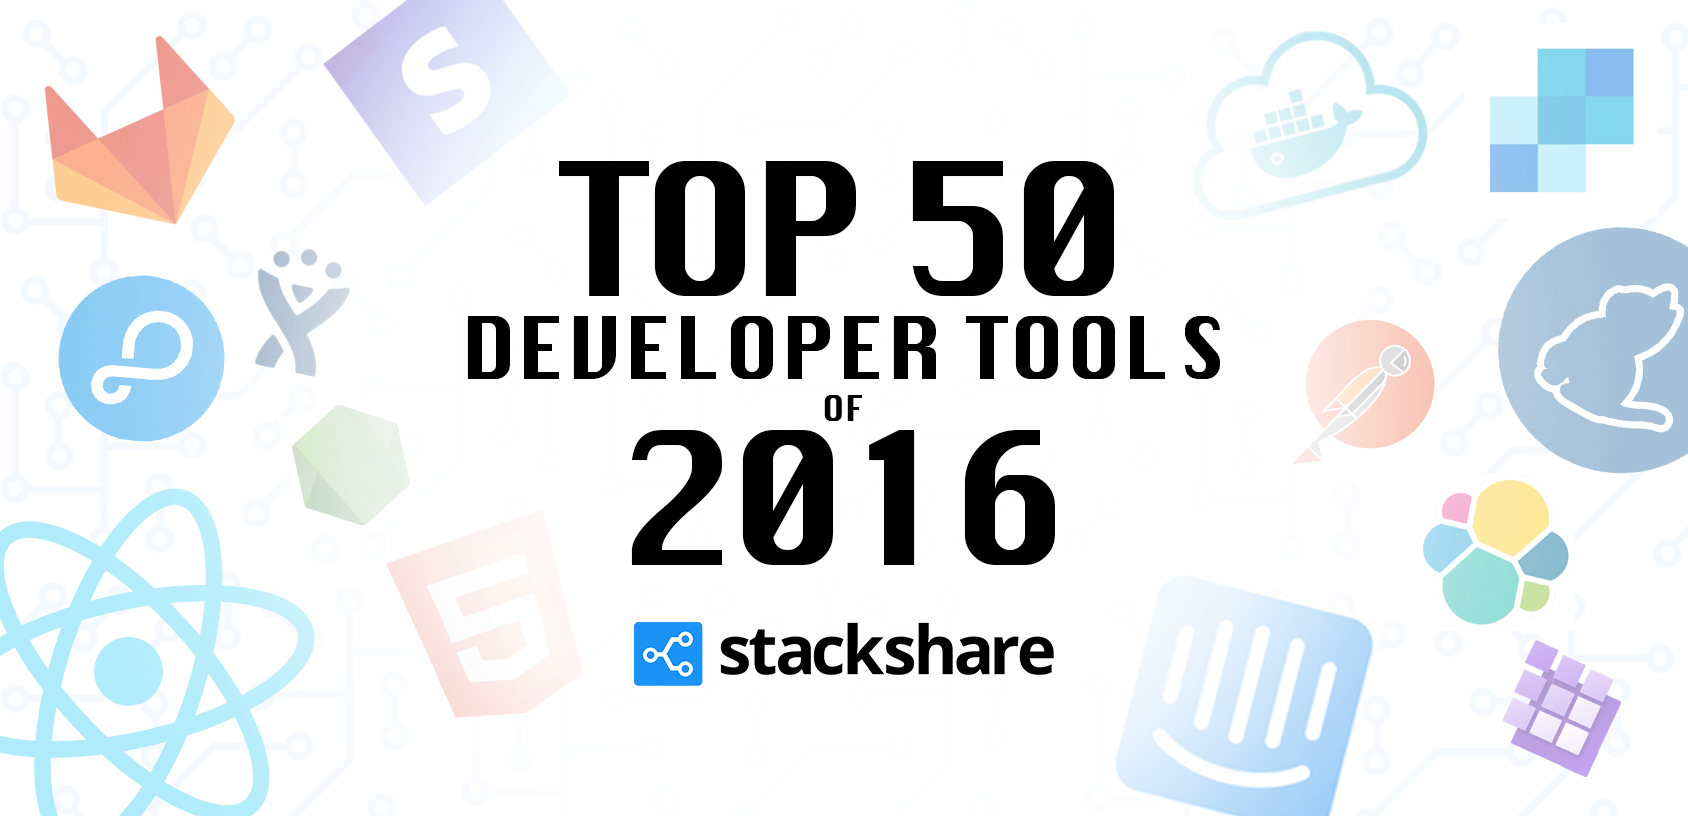 Stackshare top 50 dev tools 2016